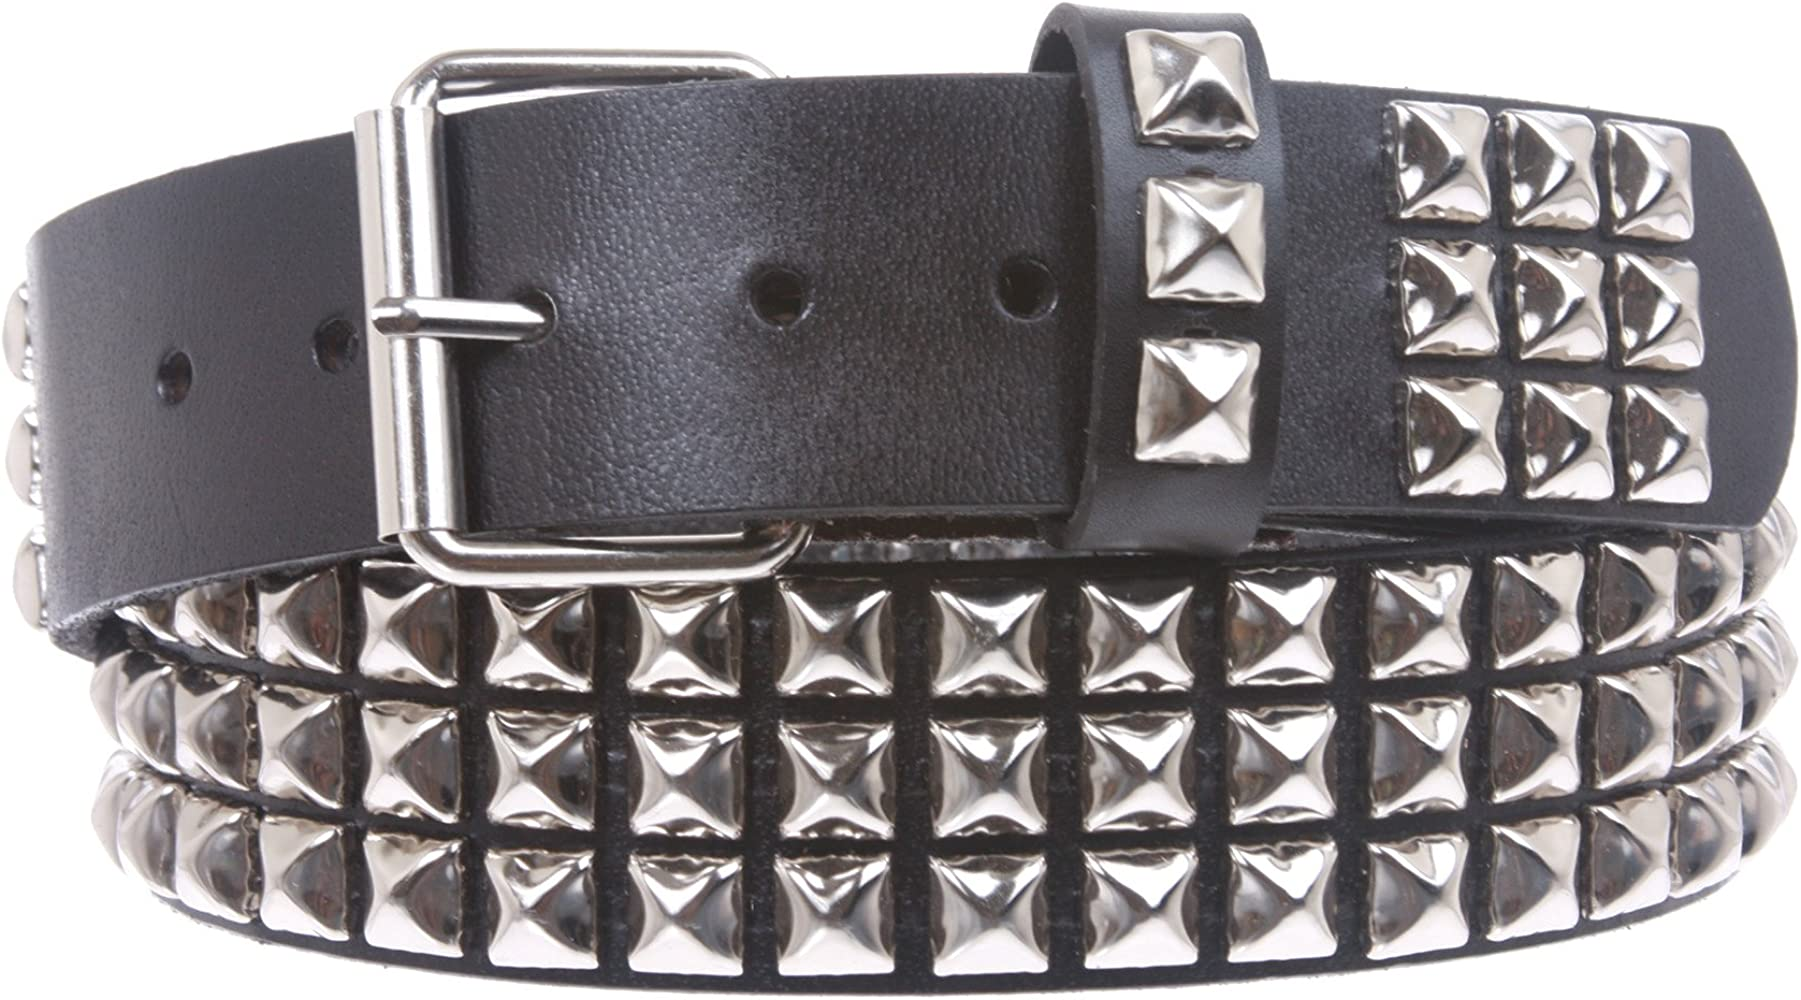 GOTH PUNK SILVER STUD STUDDED WHITE SNAP ON BELT L 38 NEW